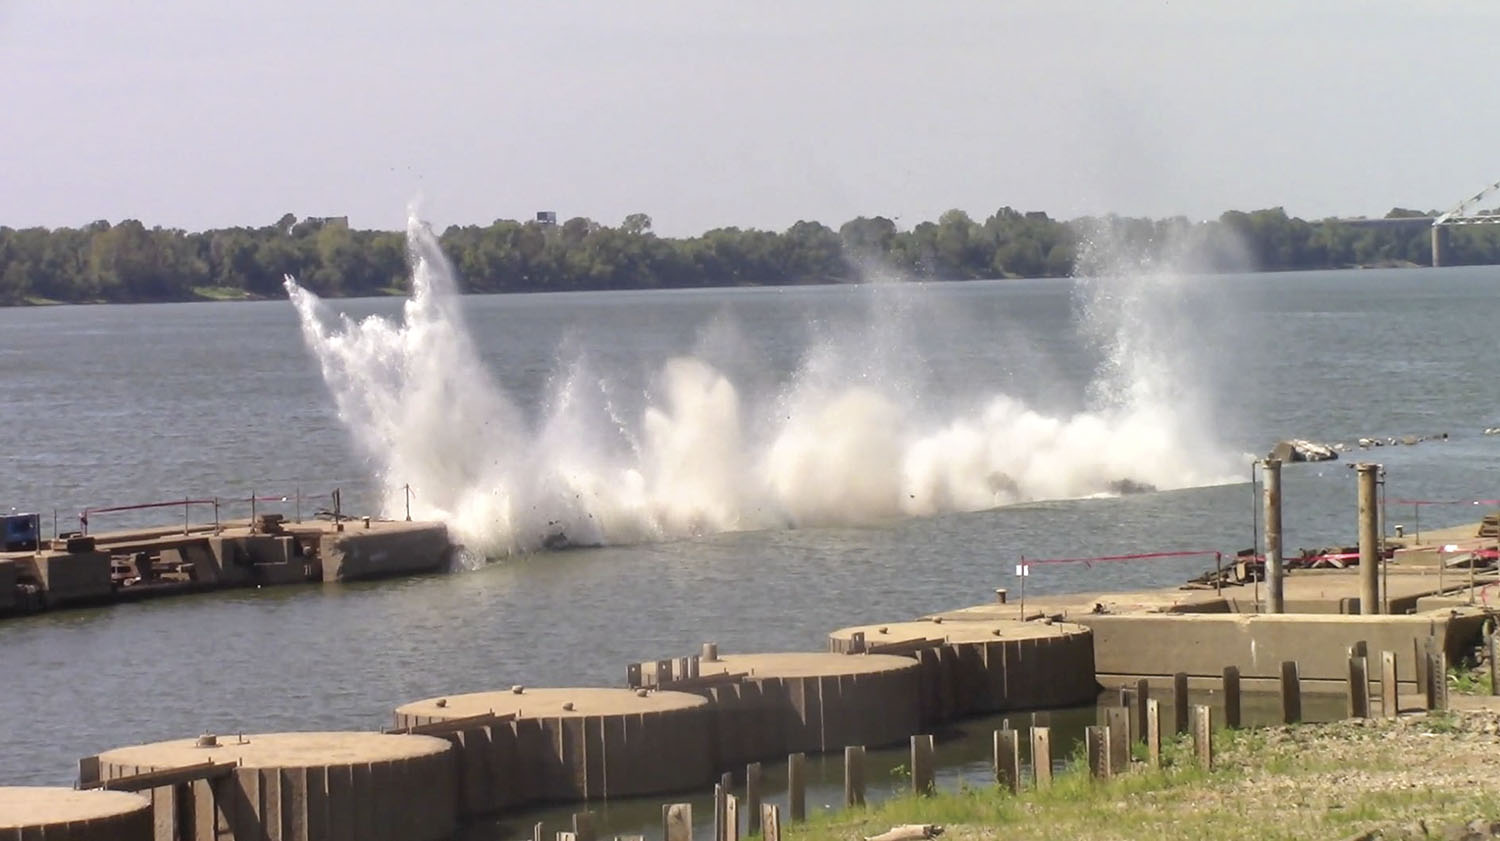 An explosive blast earlier this year is used to remove the downstream lock approach wall at Locks and Dam 52 on the Ohio River near Brookport, Illinois. (Photo courtesy of Louisville Engineer District)